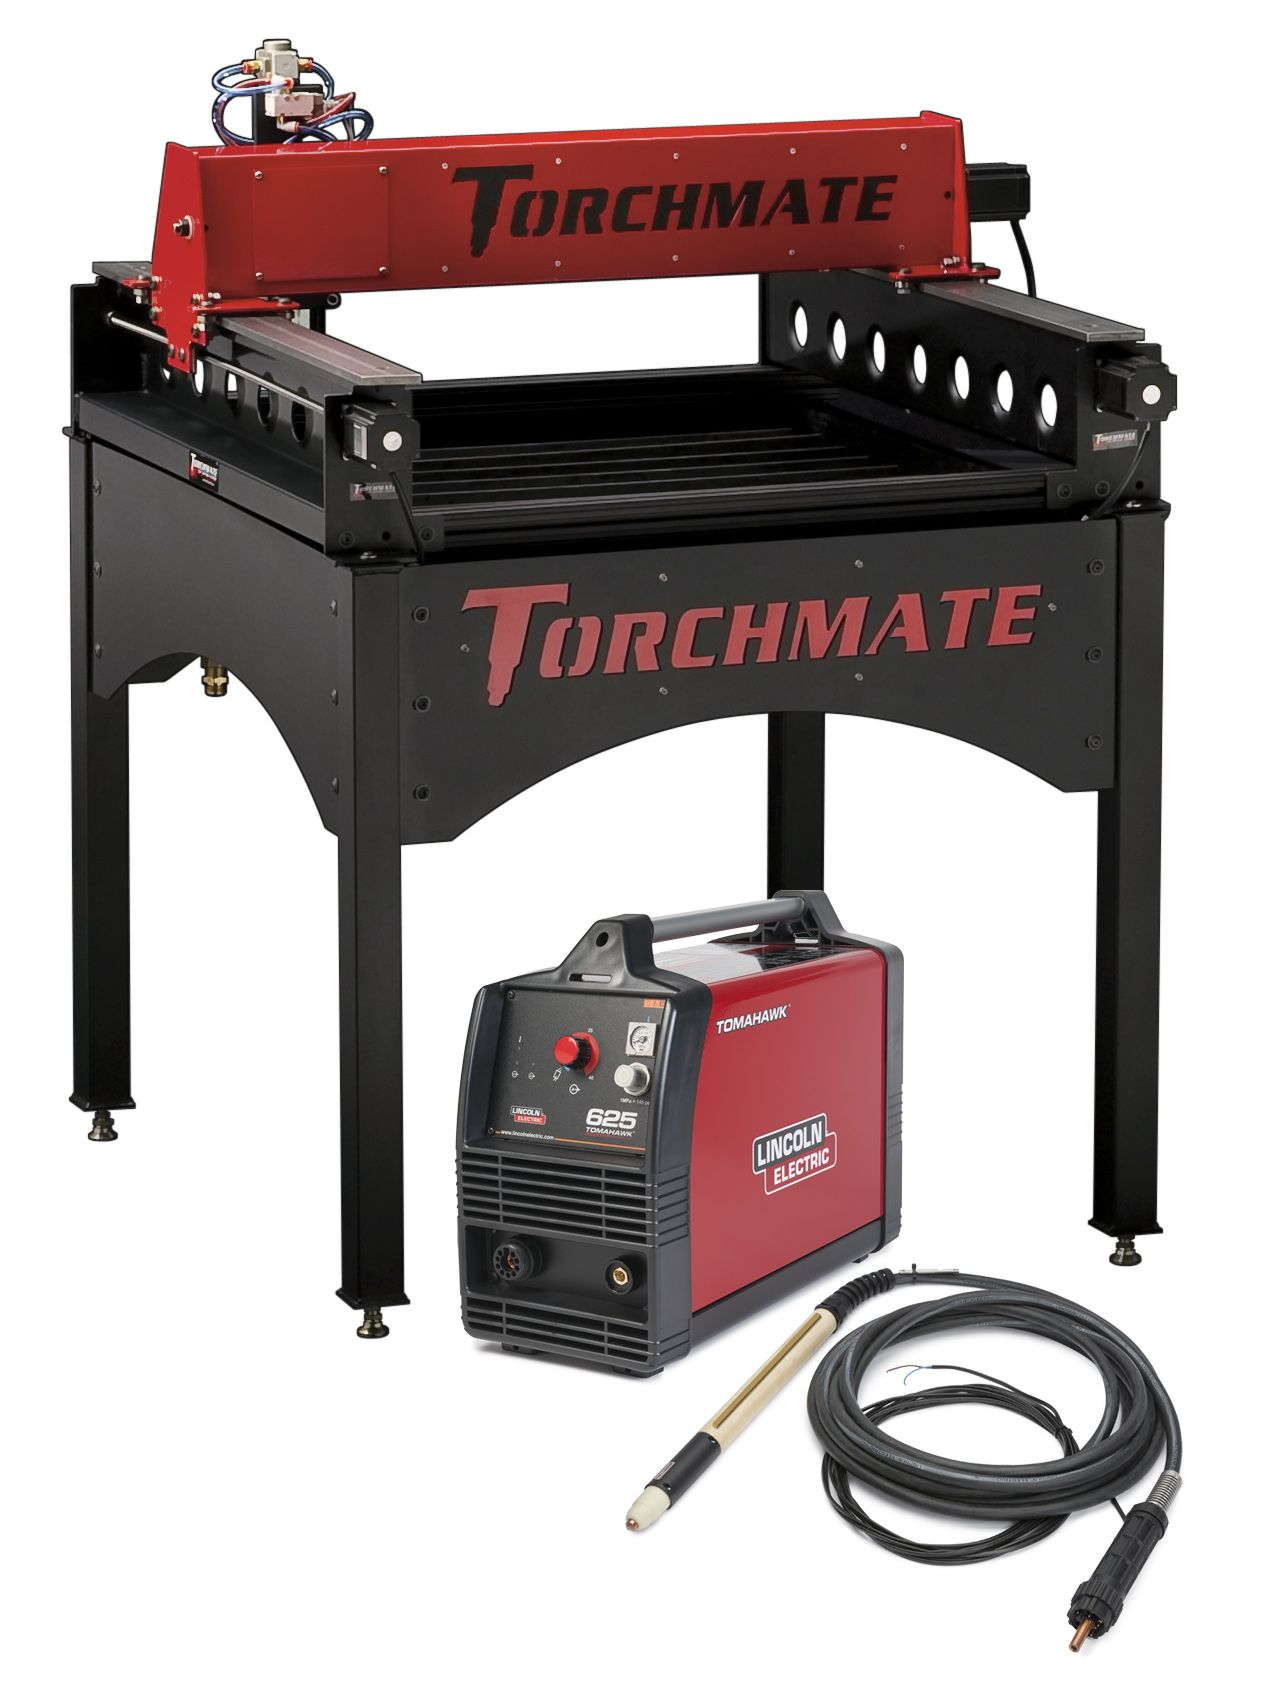 Cnc Plasma Cutter Table Awesome For Cutting Complex